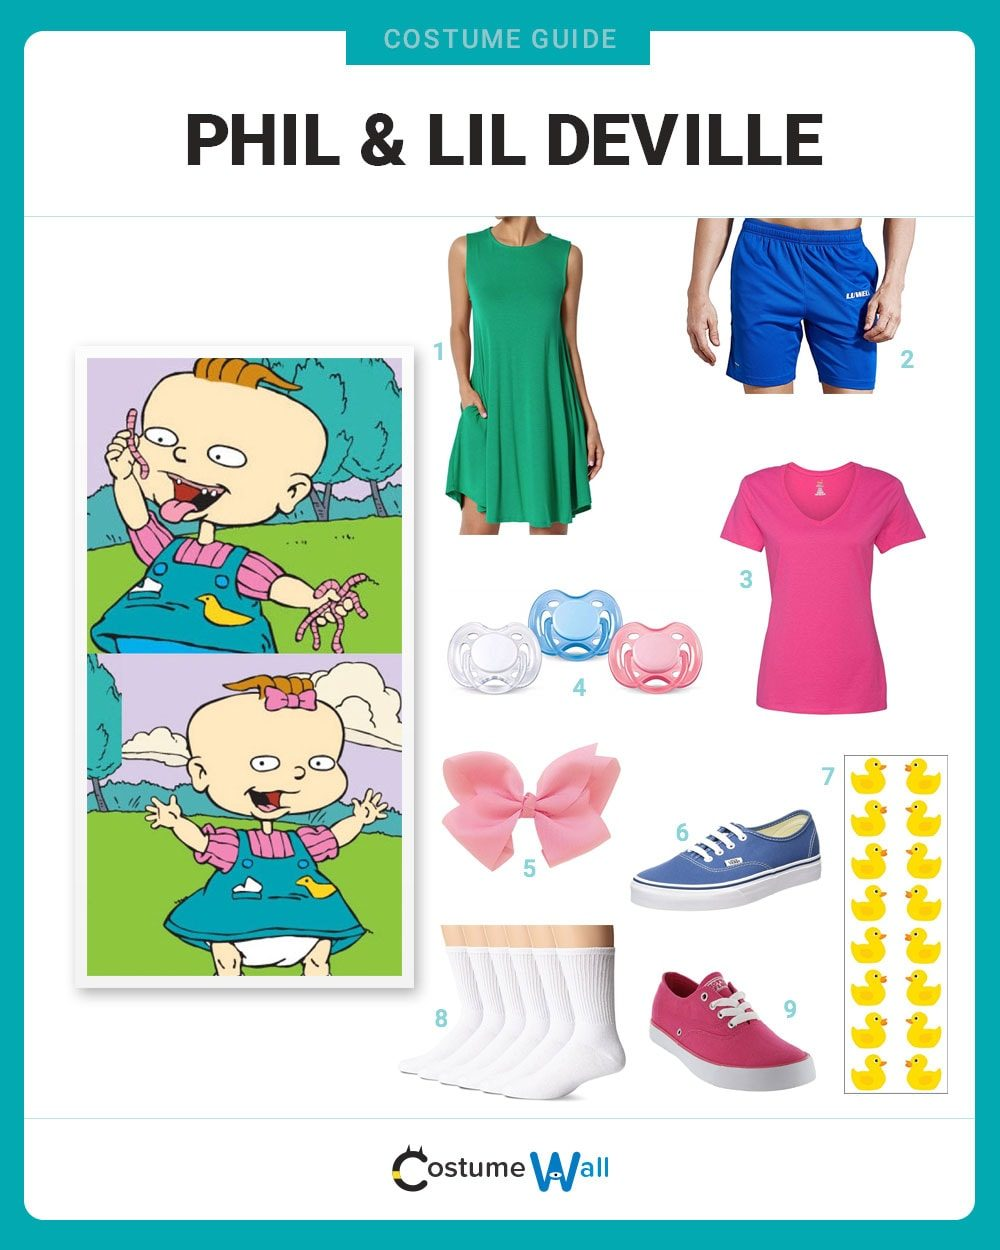 Phil & Lil DeVille Costume Guide